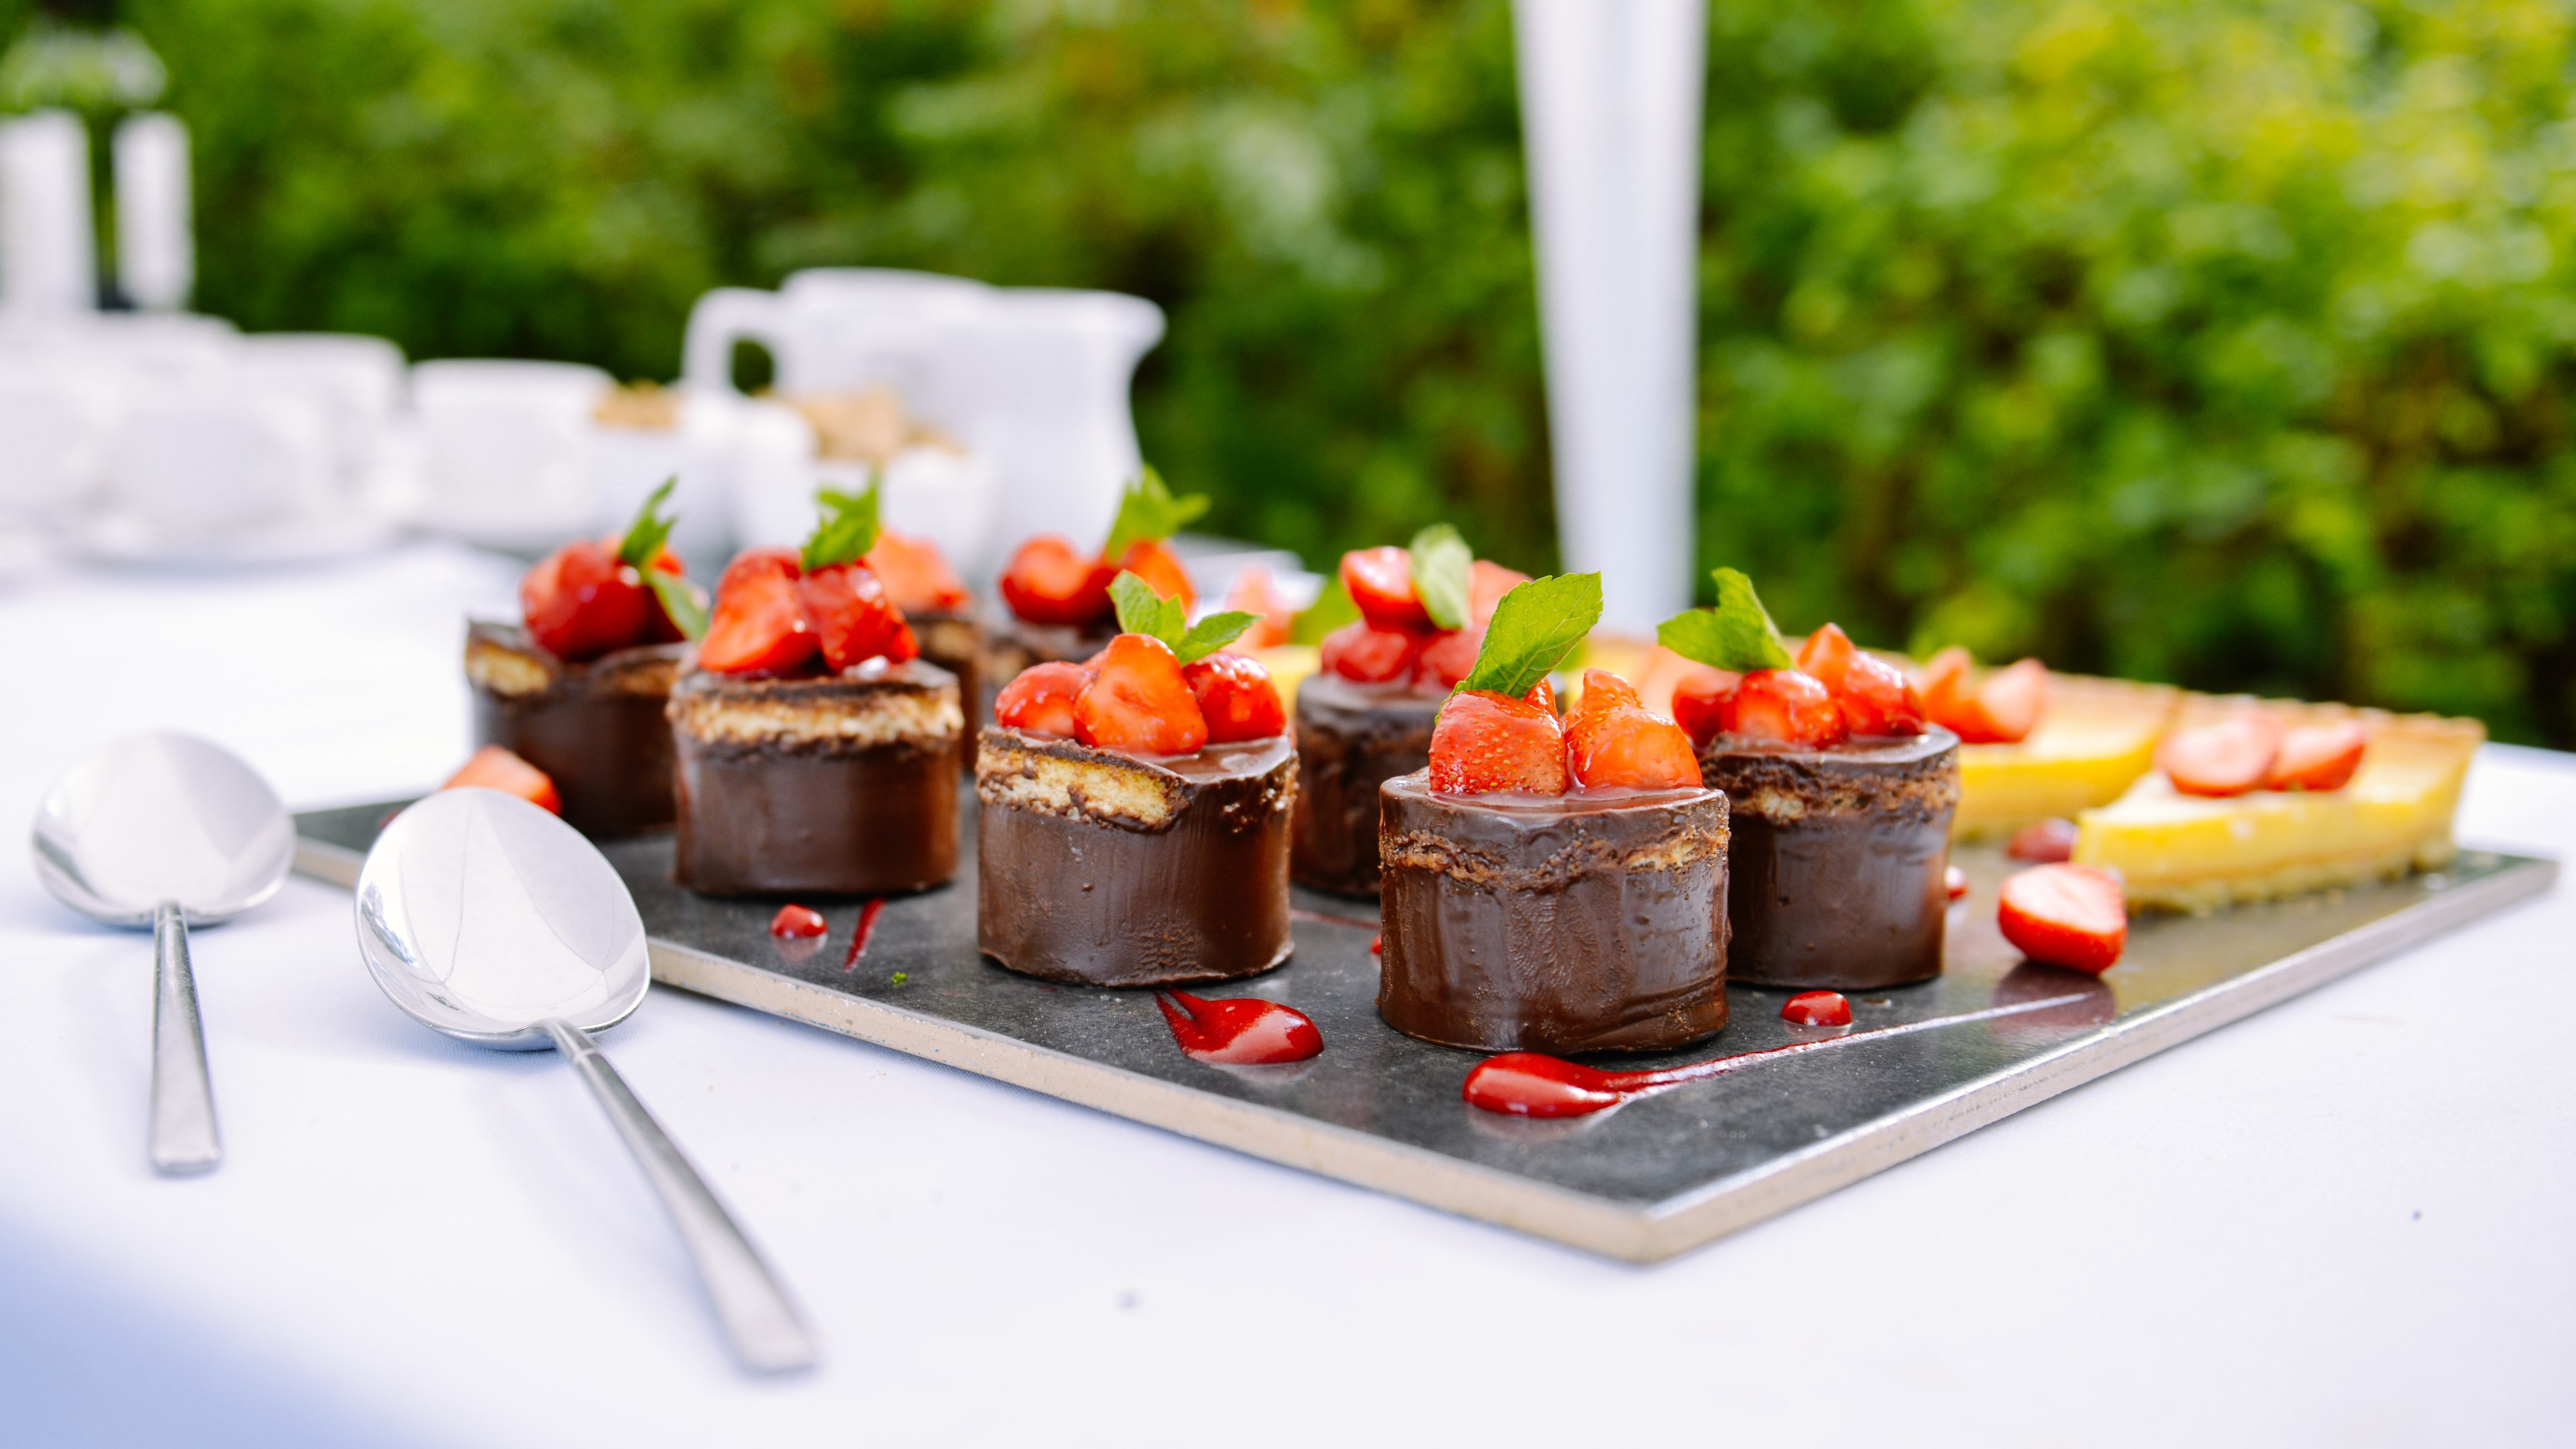 Chocolate cakes with strawberries | 3840x2160 wallpaper